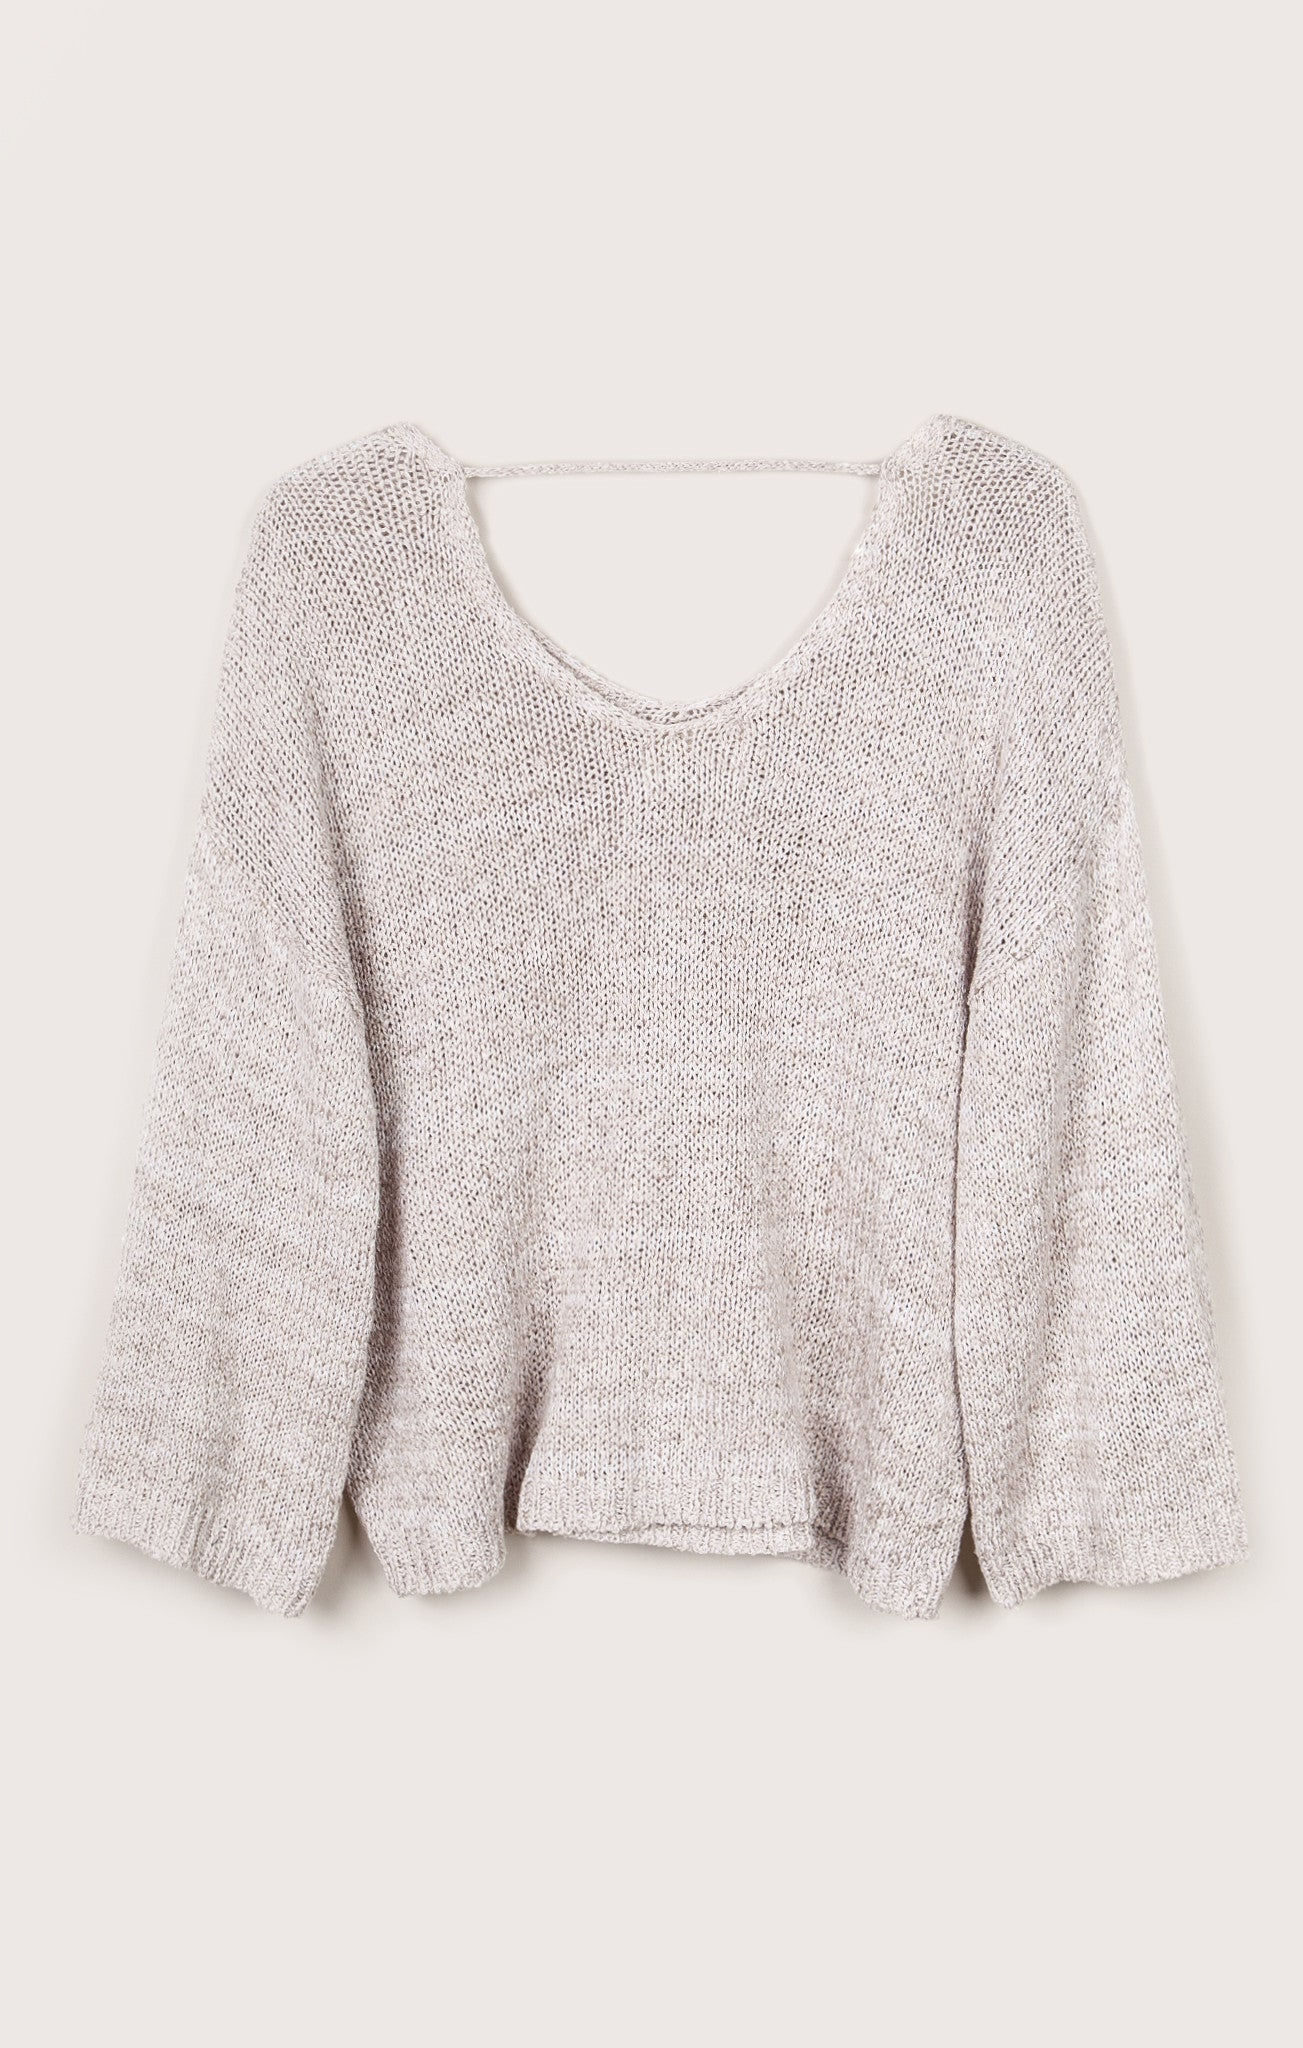 KNIT TOP WITH LOW BACK